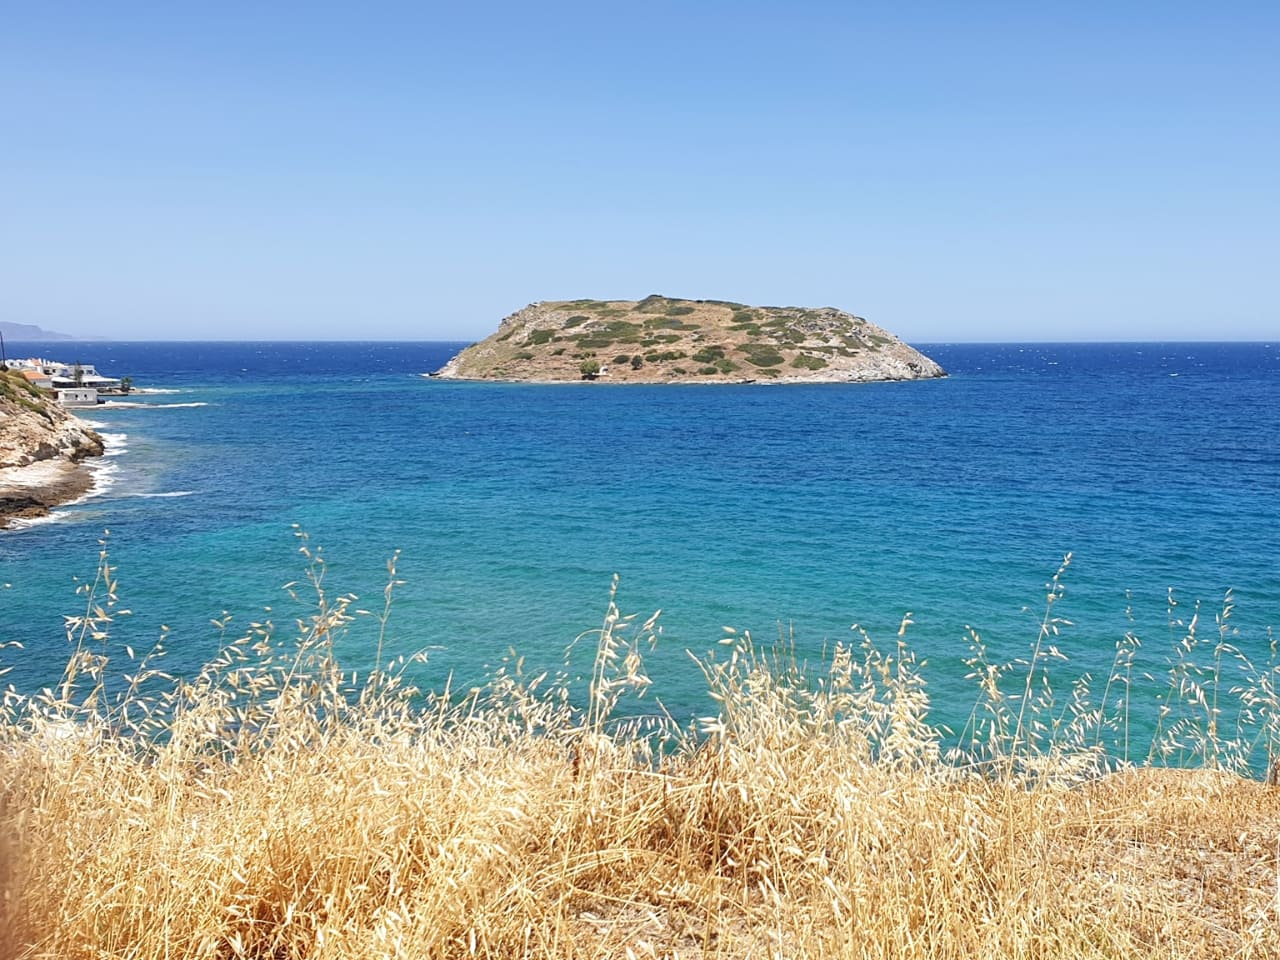 mochlos travel guide, mohlos travel guide, mochlos where to stay, mochlos villas apartments, mohlos ancient site, mohlos history, mochlos activities, things to do mochlos, crete travel mochlos, the crete you are looking for